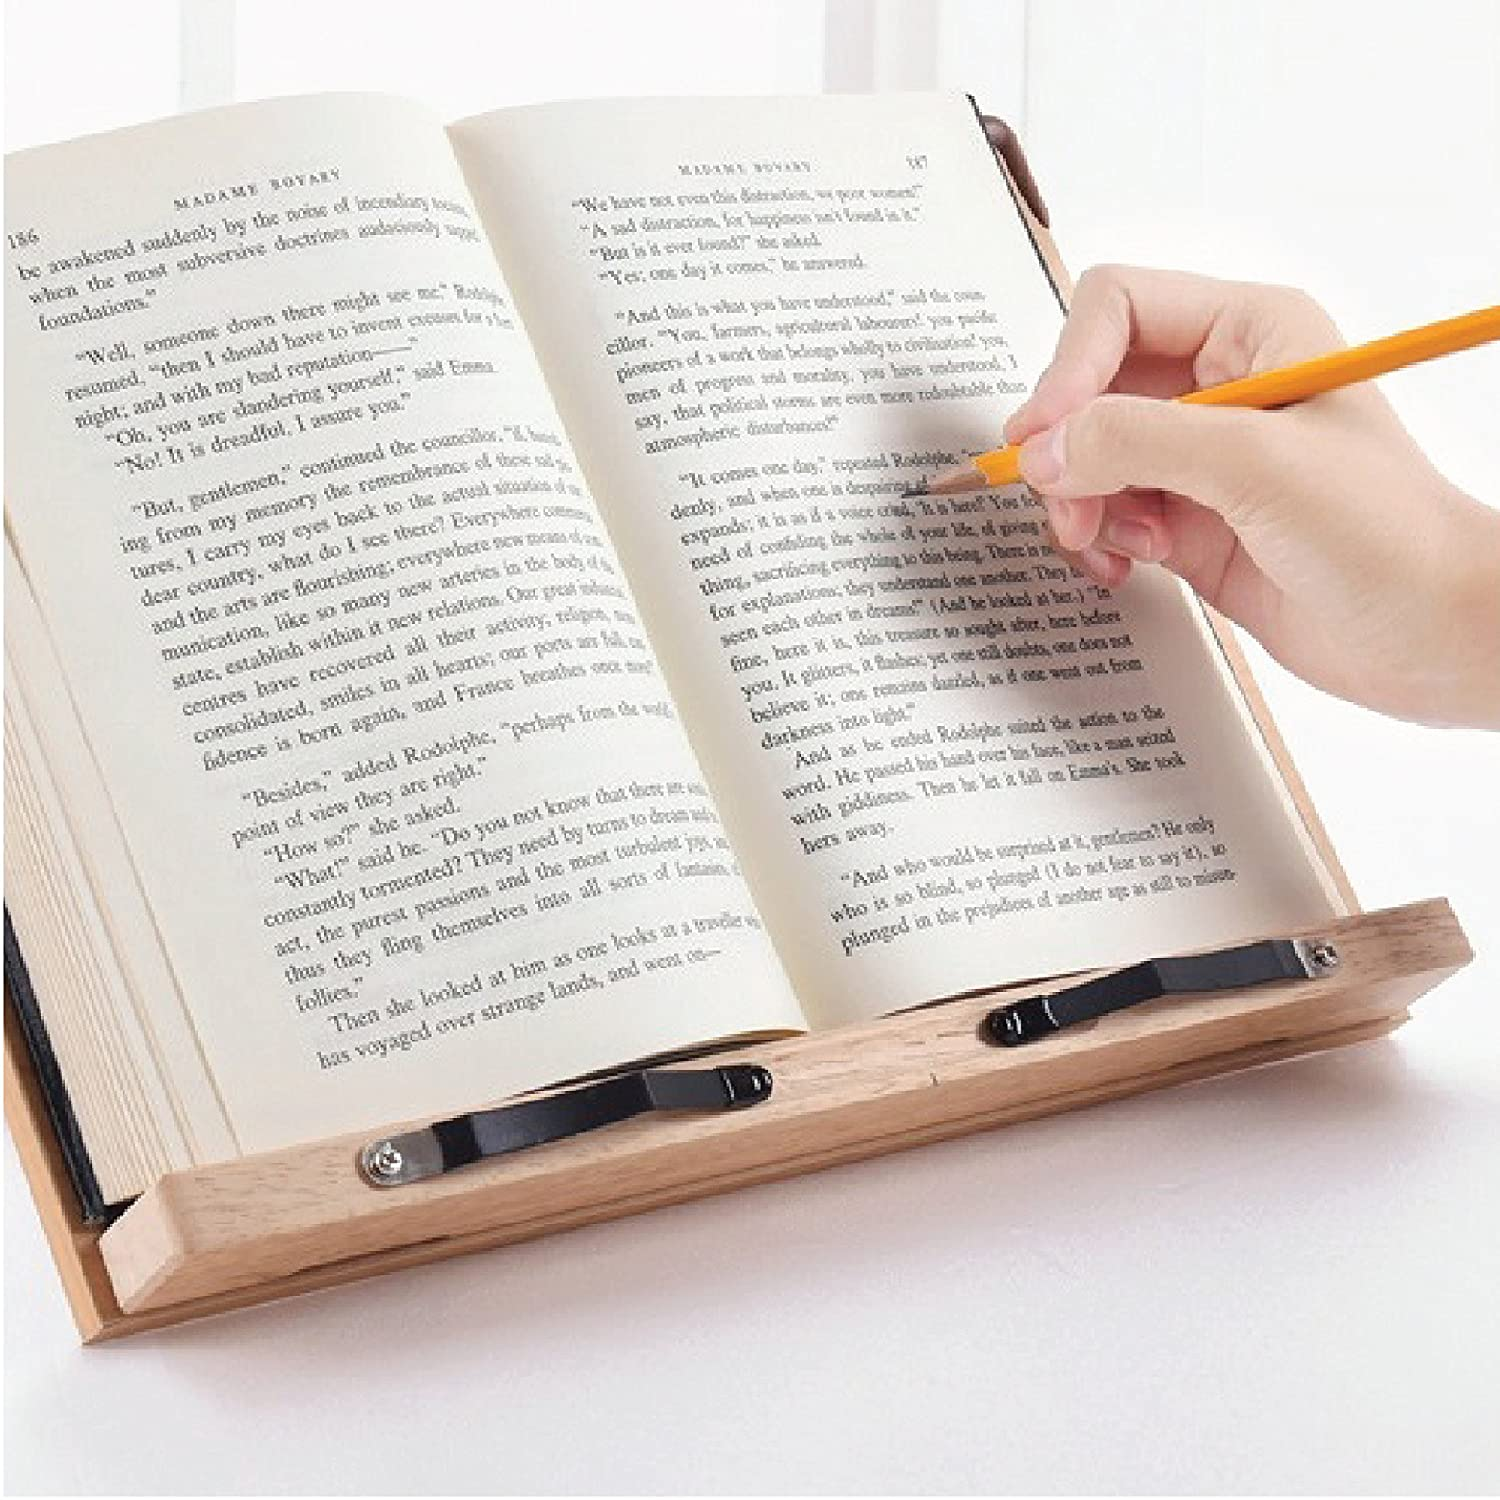 camino bookstands basic type study reading desk